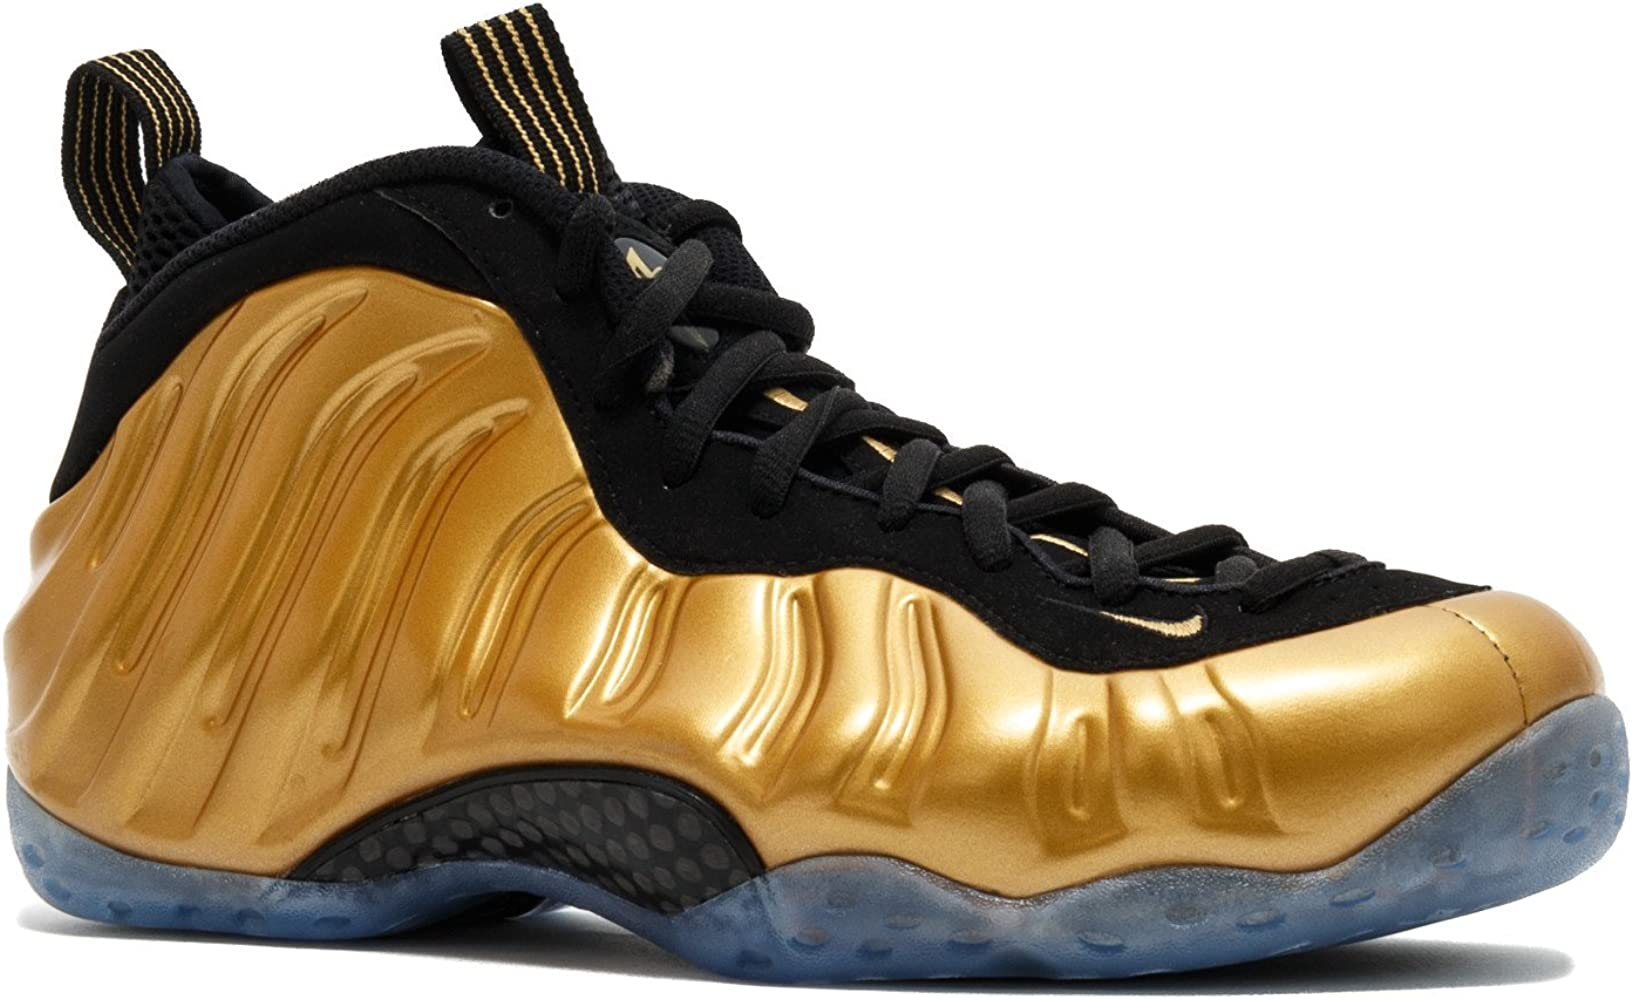 The Nike Air Foamposite One Copper Makes A Comeback ...